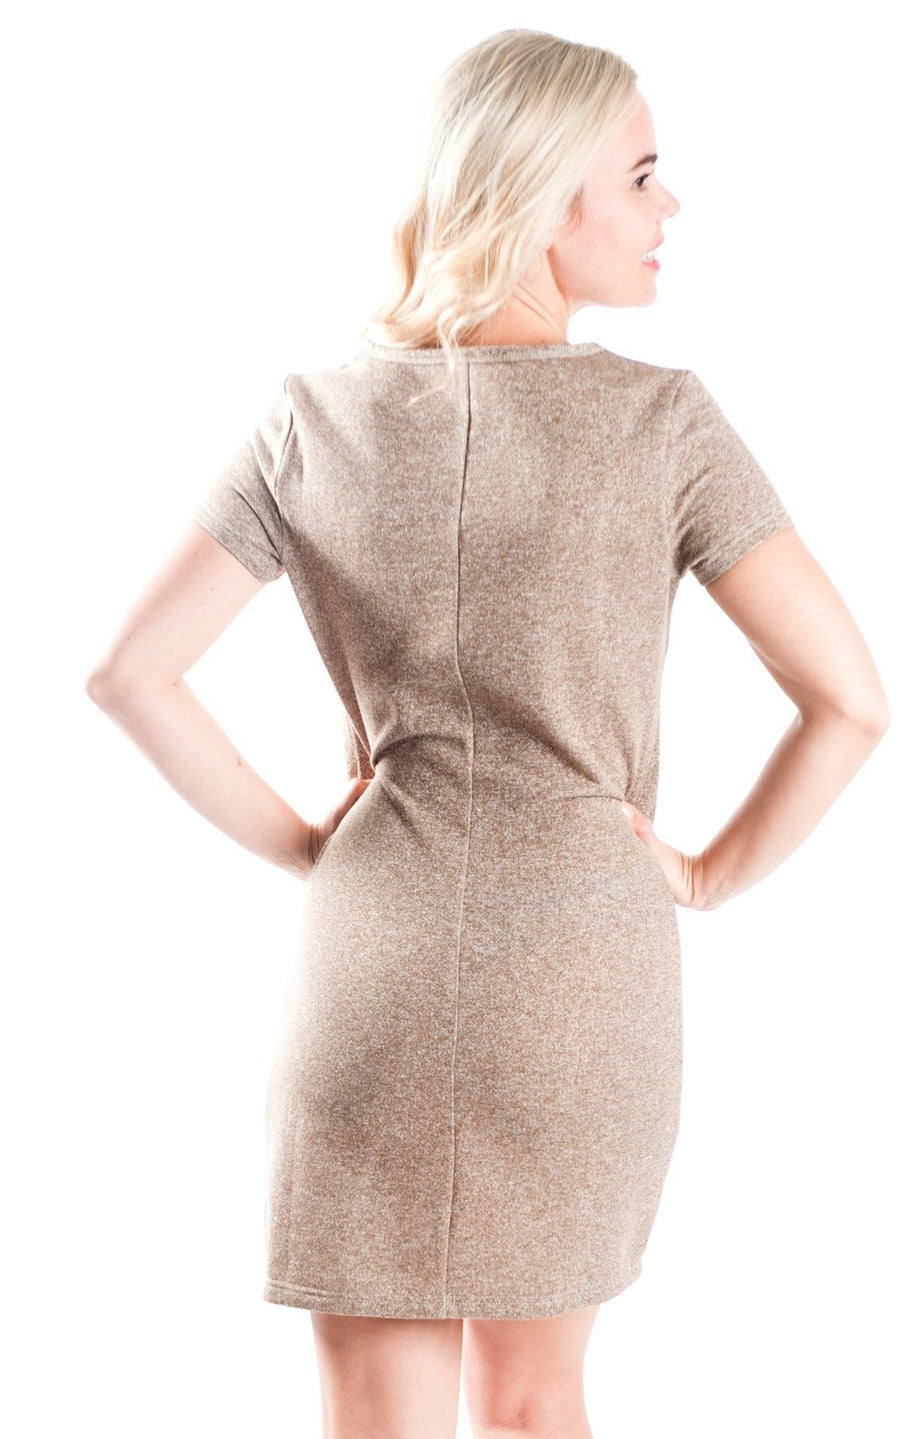 All For Color-Khaki Demi Shift Dress - FINAL SALE-Dresses